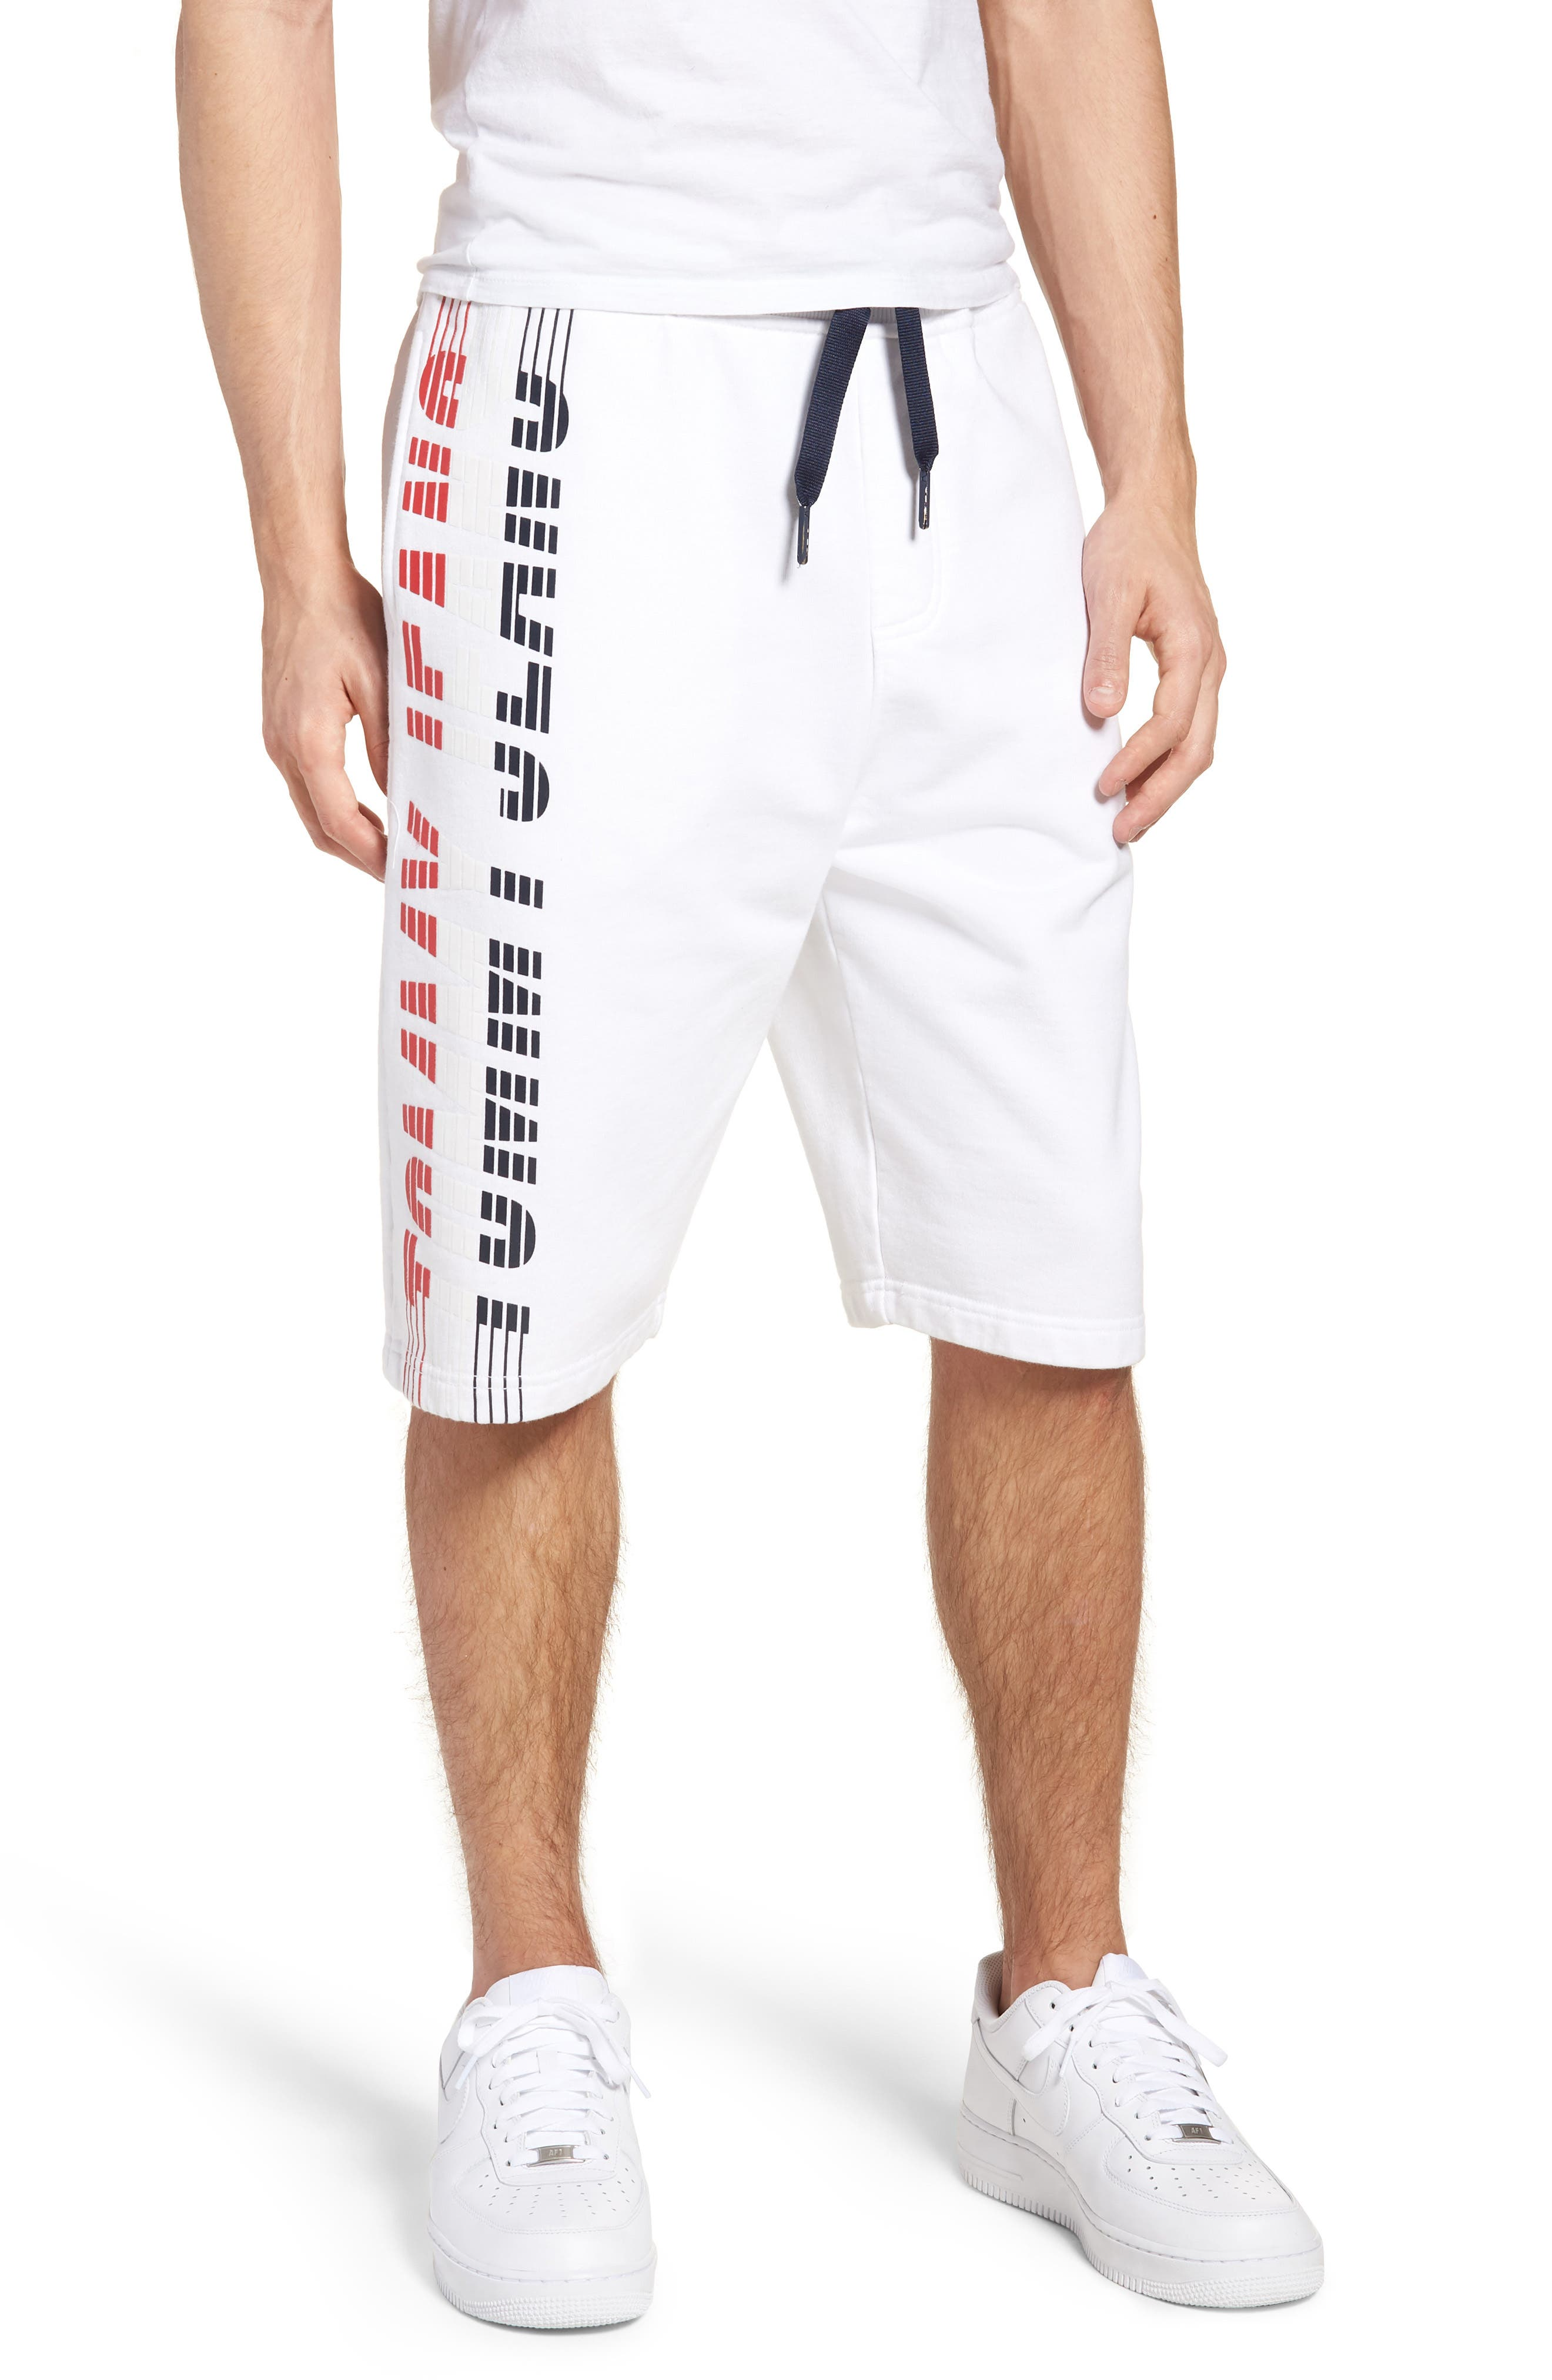 Vintage Graphic Basketball Shorts,                             Main thumbnail 1, color,                             Classic White